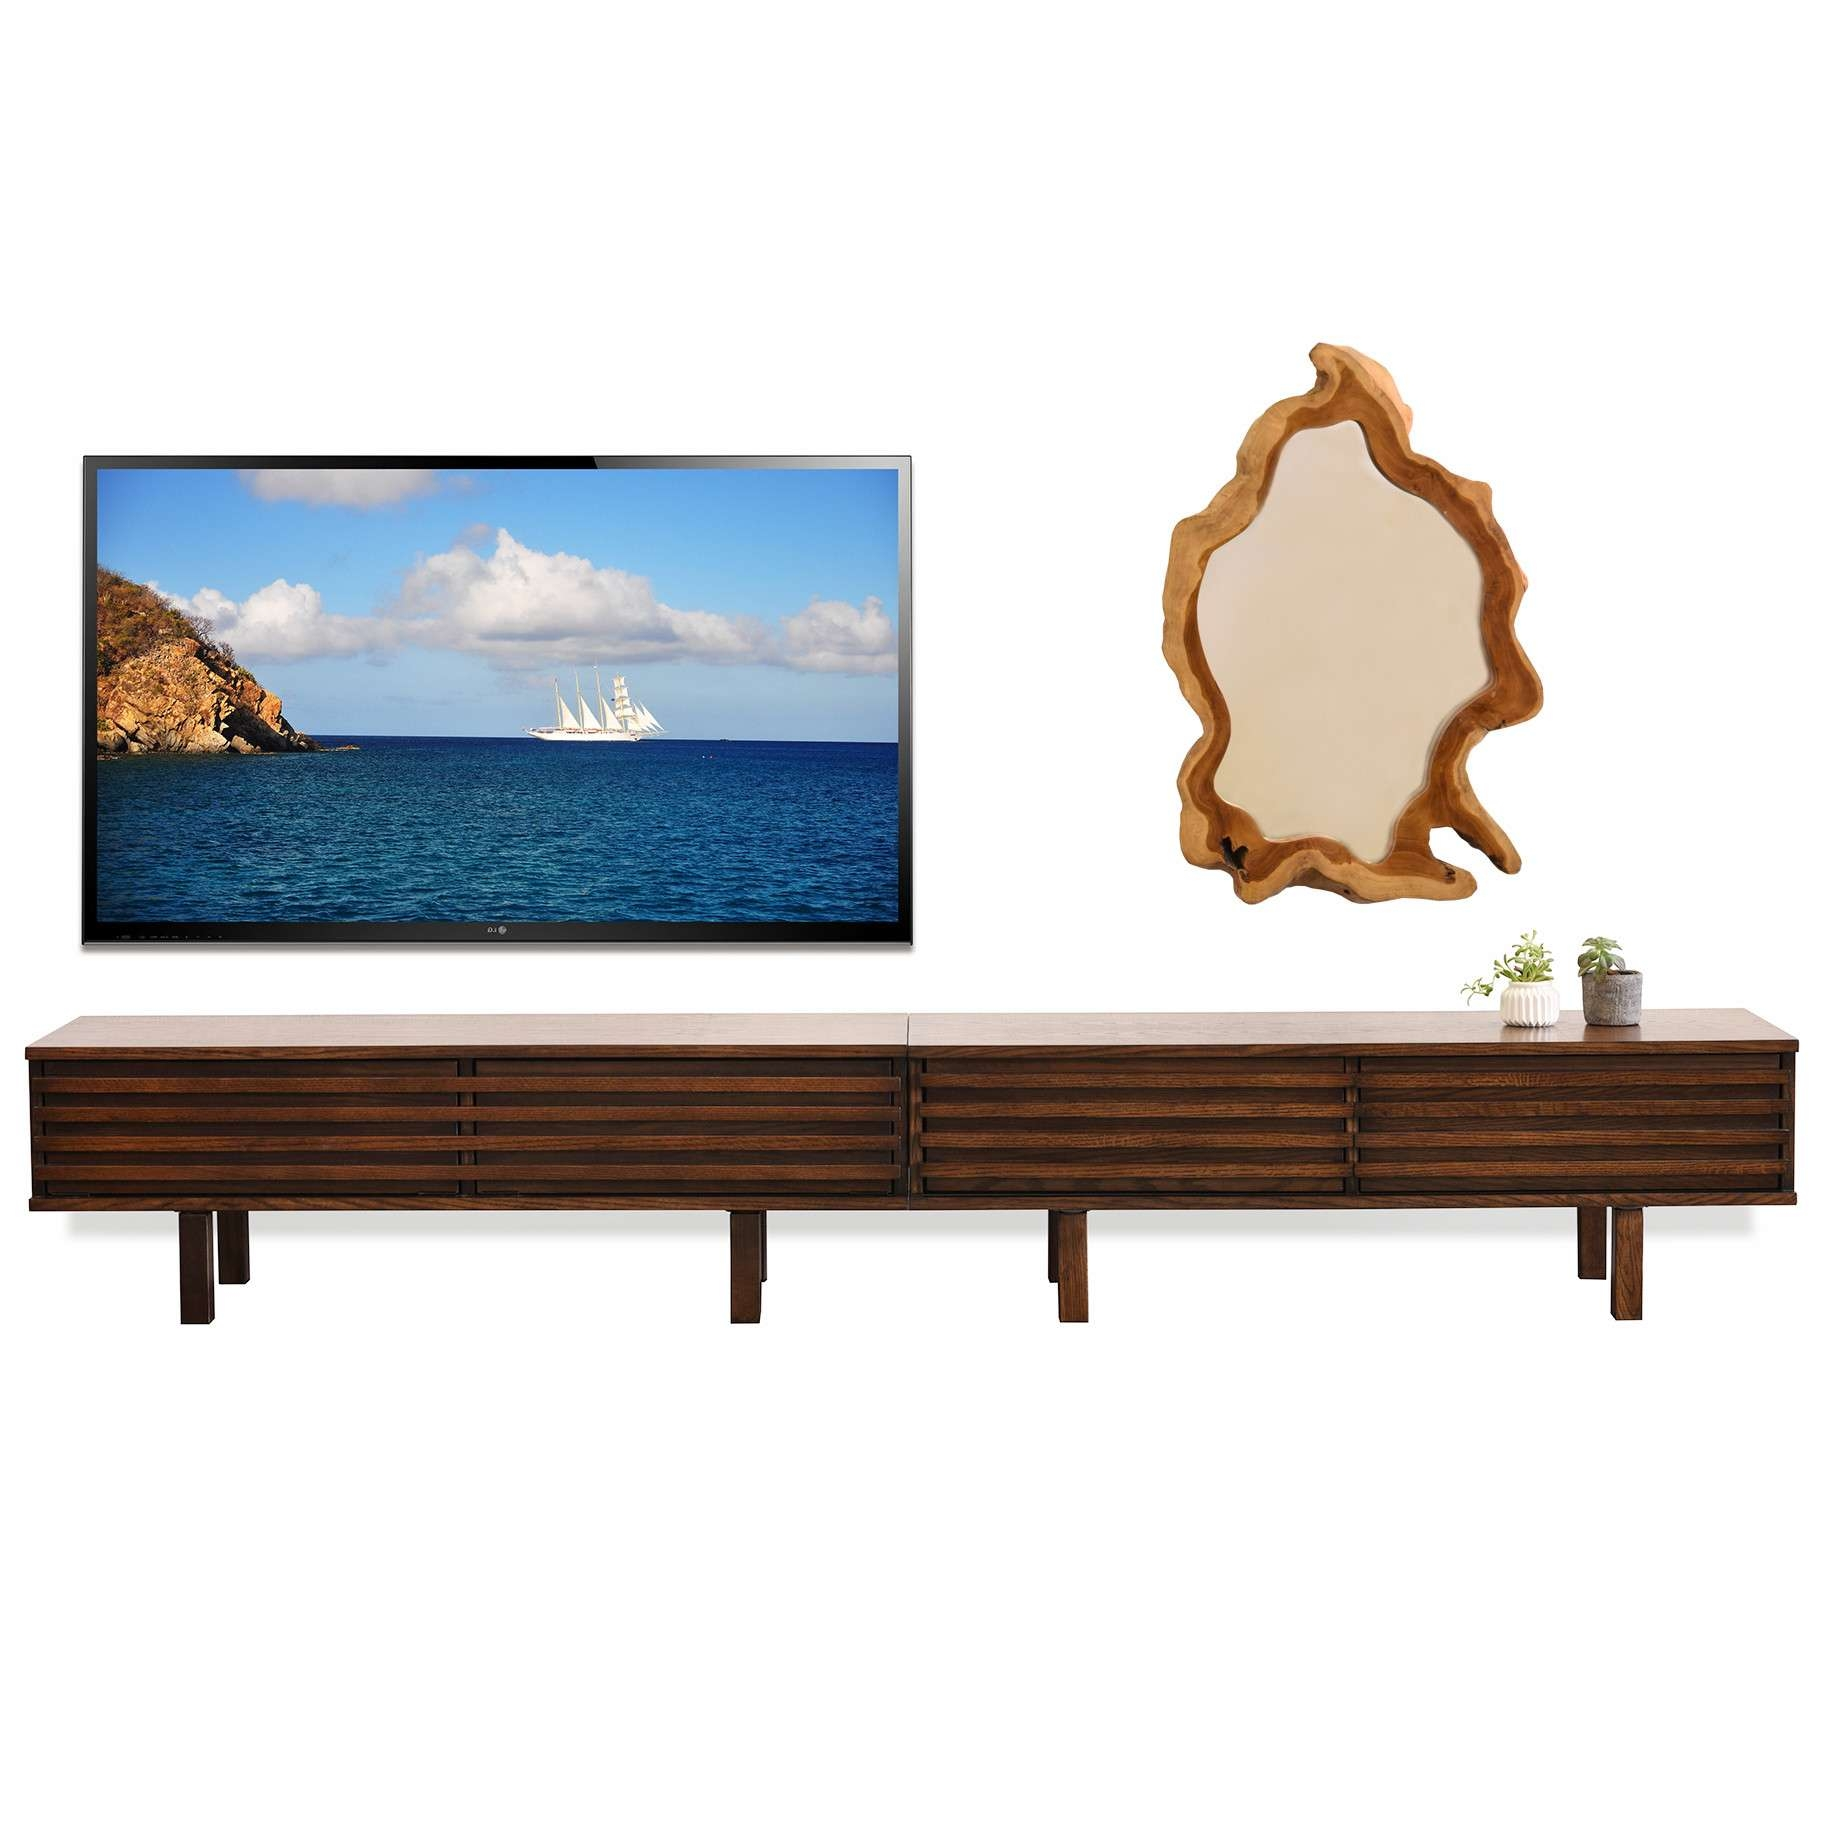 Modern Low Profile Tv Stand | Home Design Ideas Regarding Modern Low Profile Tv Stands (View 8 of 20)